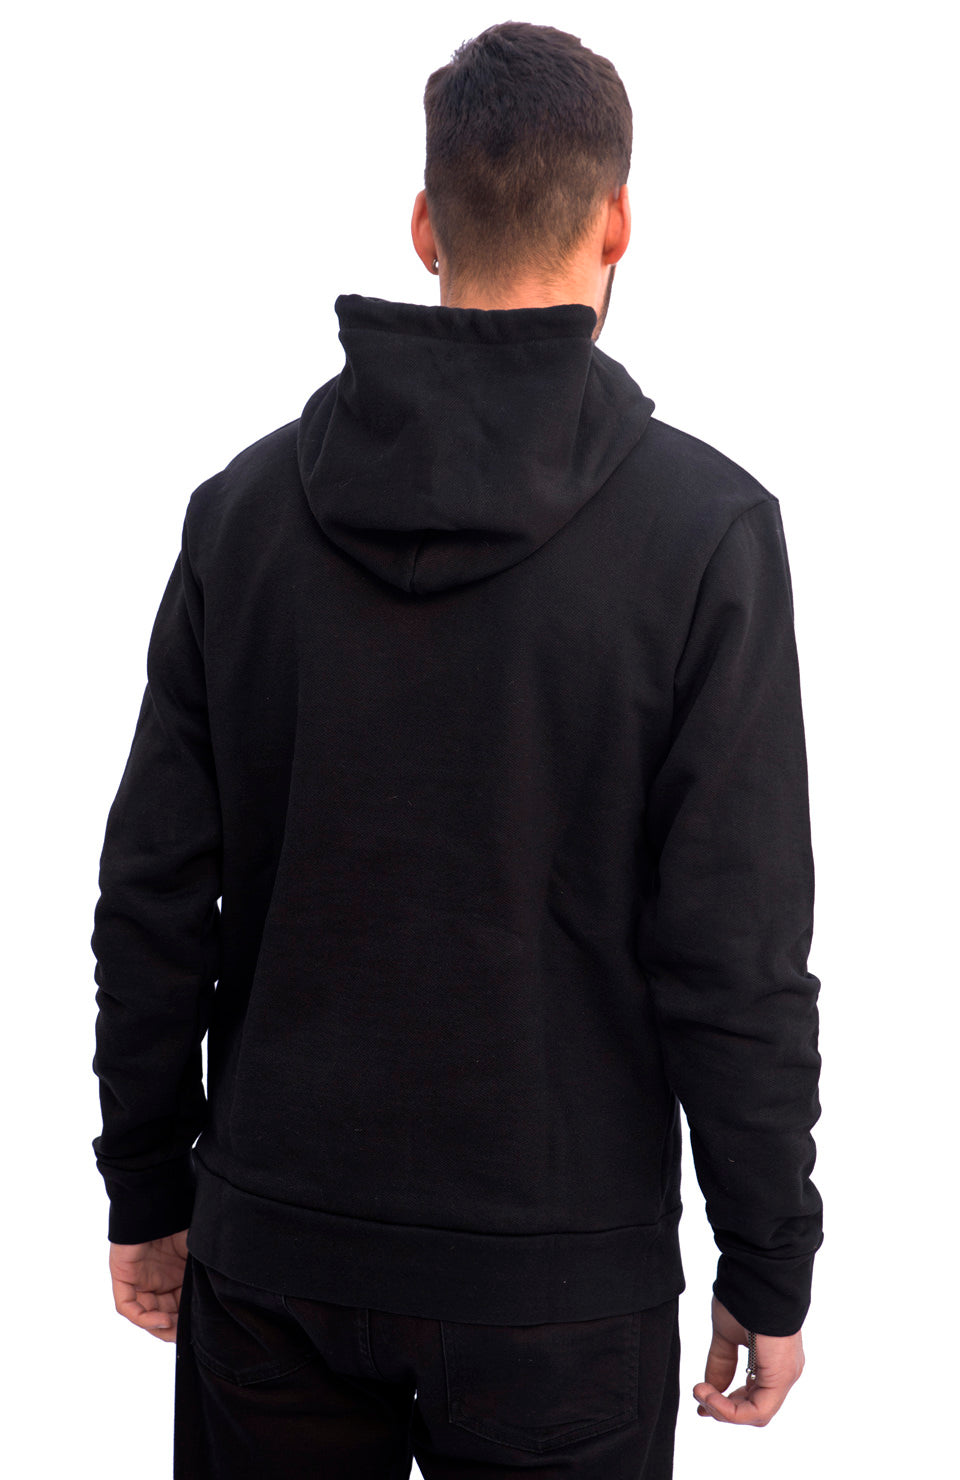 SS19 MARIA by fifty Hoodie Black W2 Black back